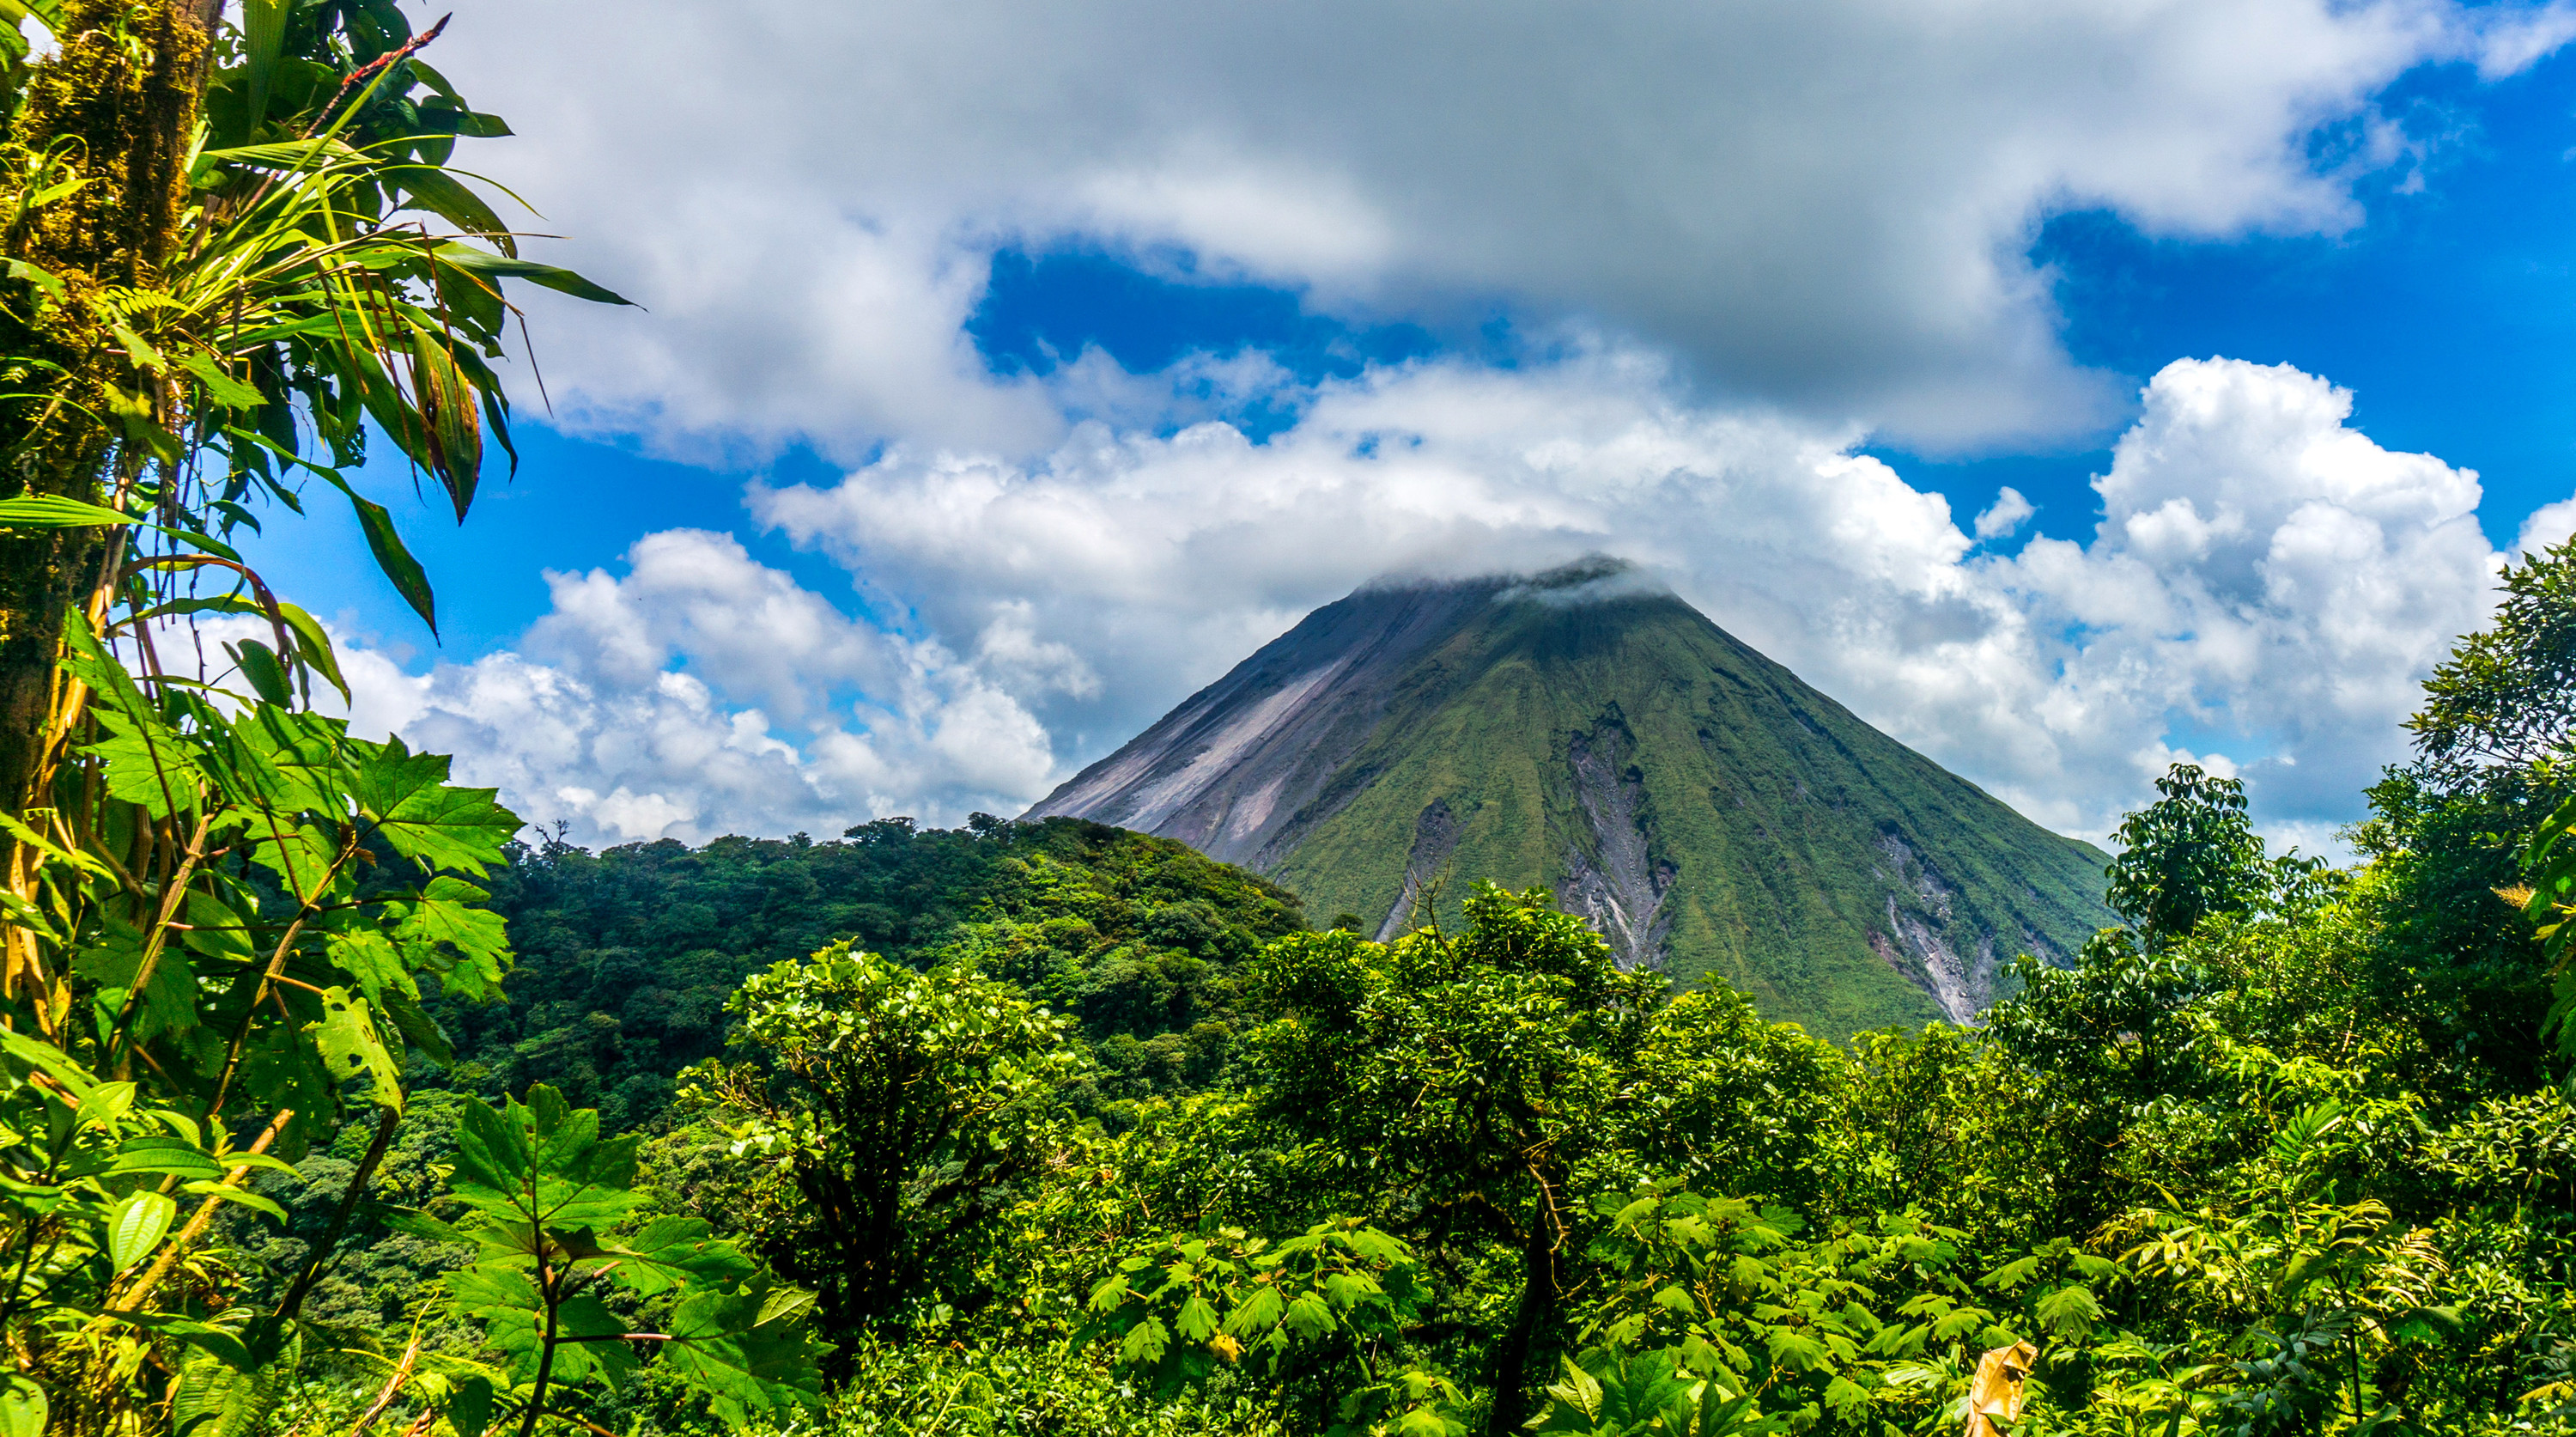 3000x1673 Earth - Volcano Earth Forest Green Tree Cloud El Salvador Wallpaper